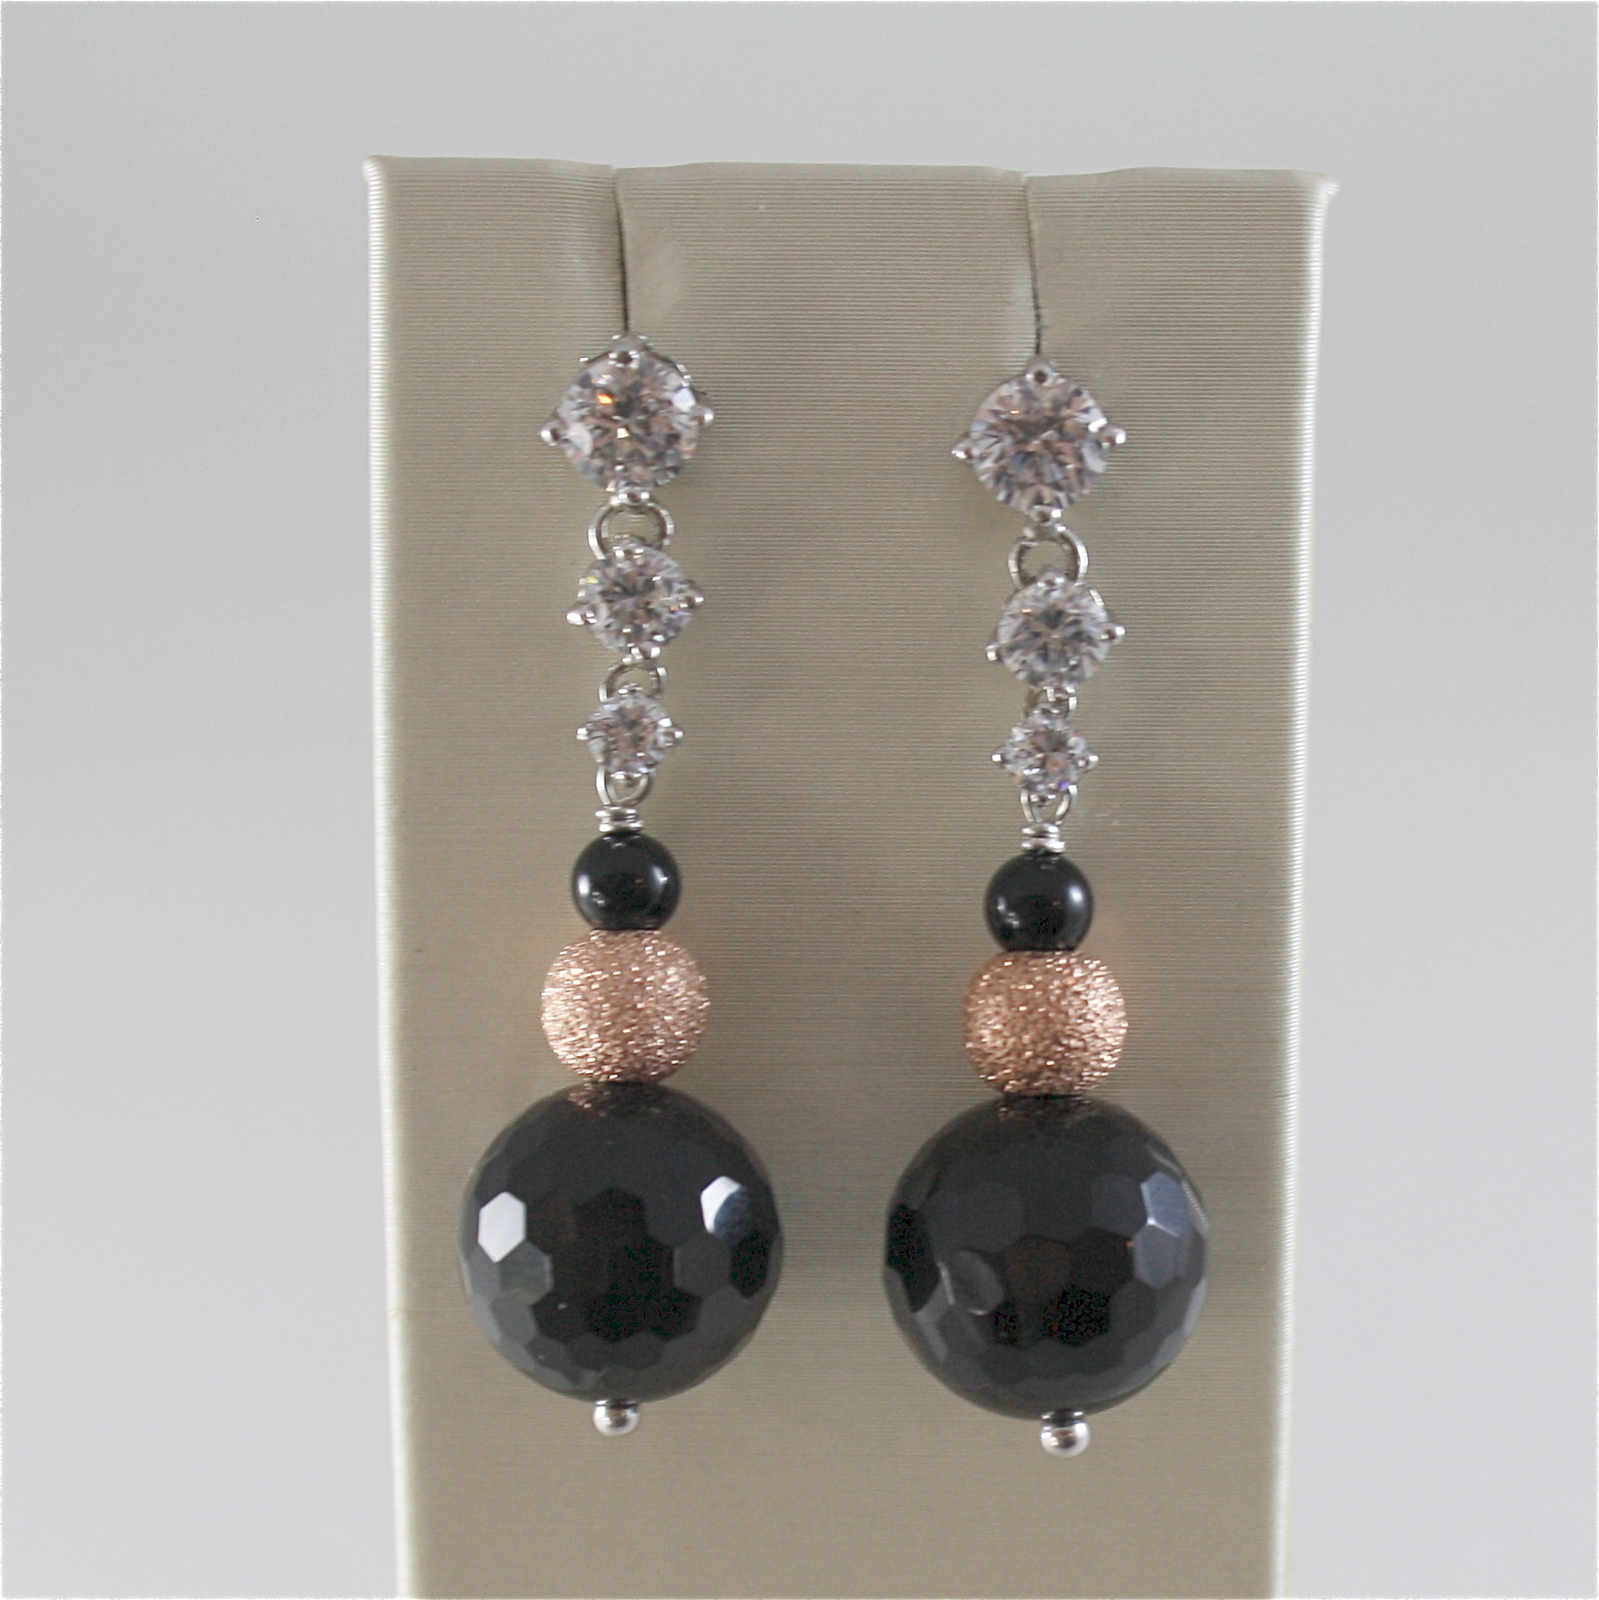 925 RODIUM SILVER EARRINGS WITH BLACK FACETED ONYX WHITE CRYSTALS, MADE IN ITALY